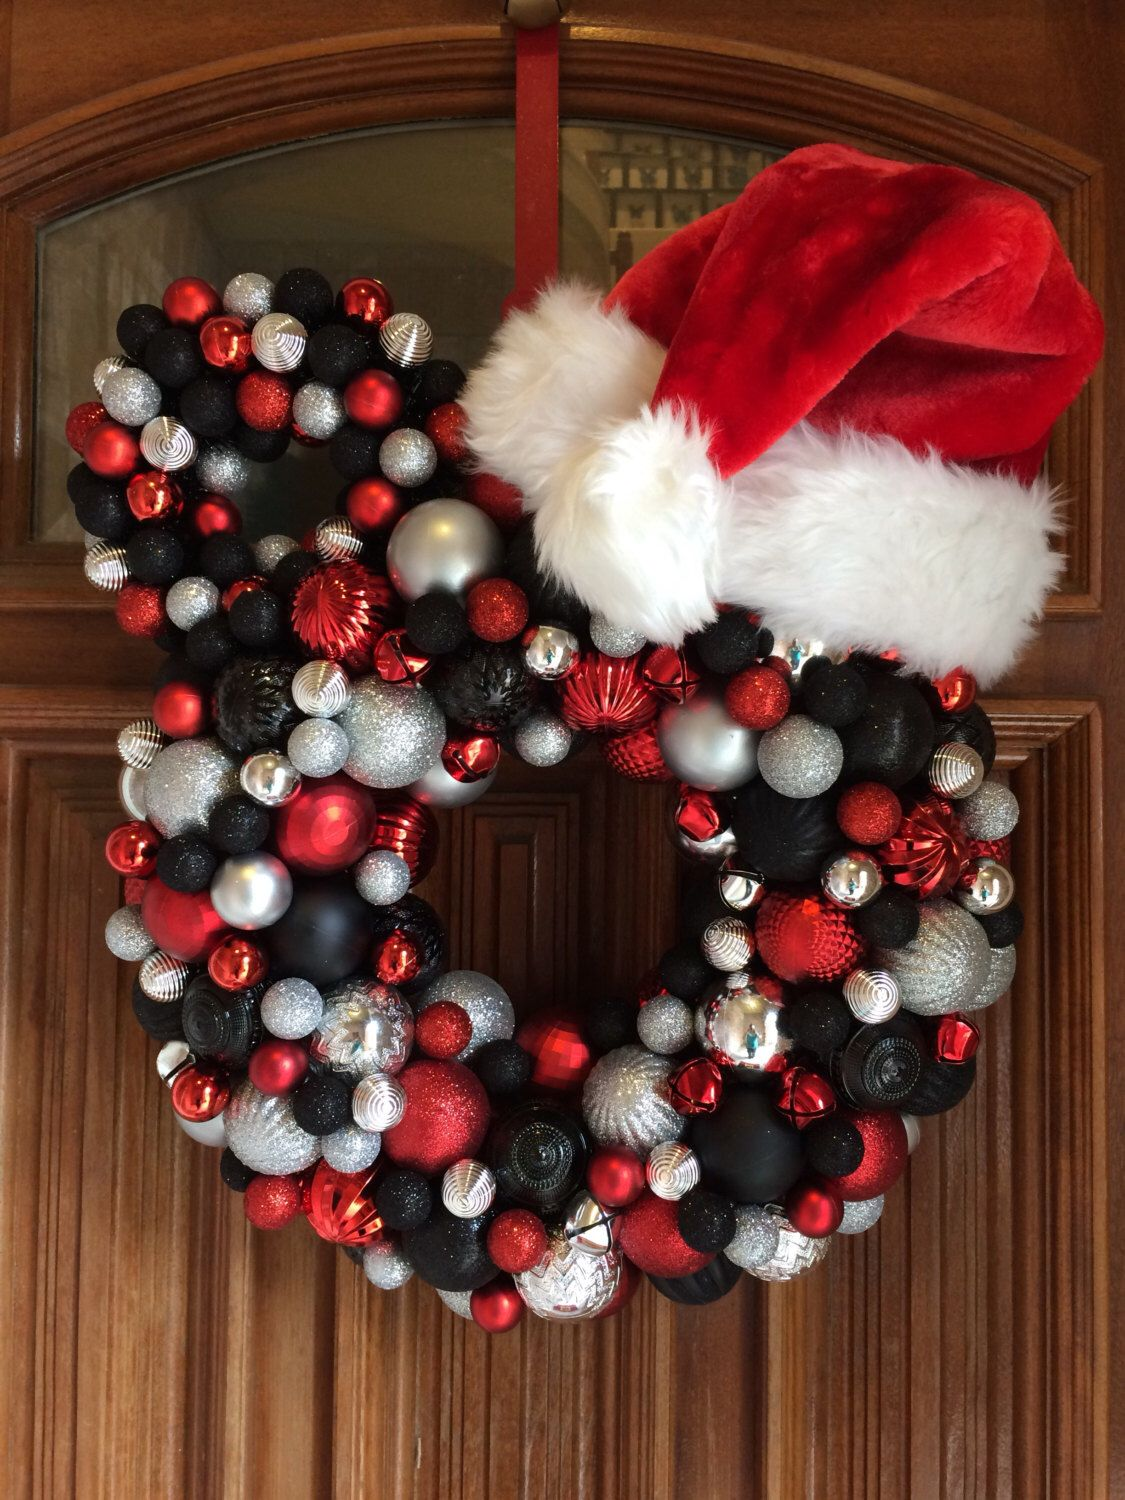 Mickey Christmas Wreath, Mickey Mouse, Disney Holiday Wreath, Red, Silver, and Black Ornament Mickey Mouse Wreath, Bauble Wreath